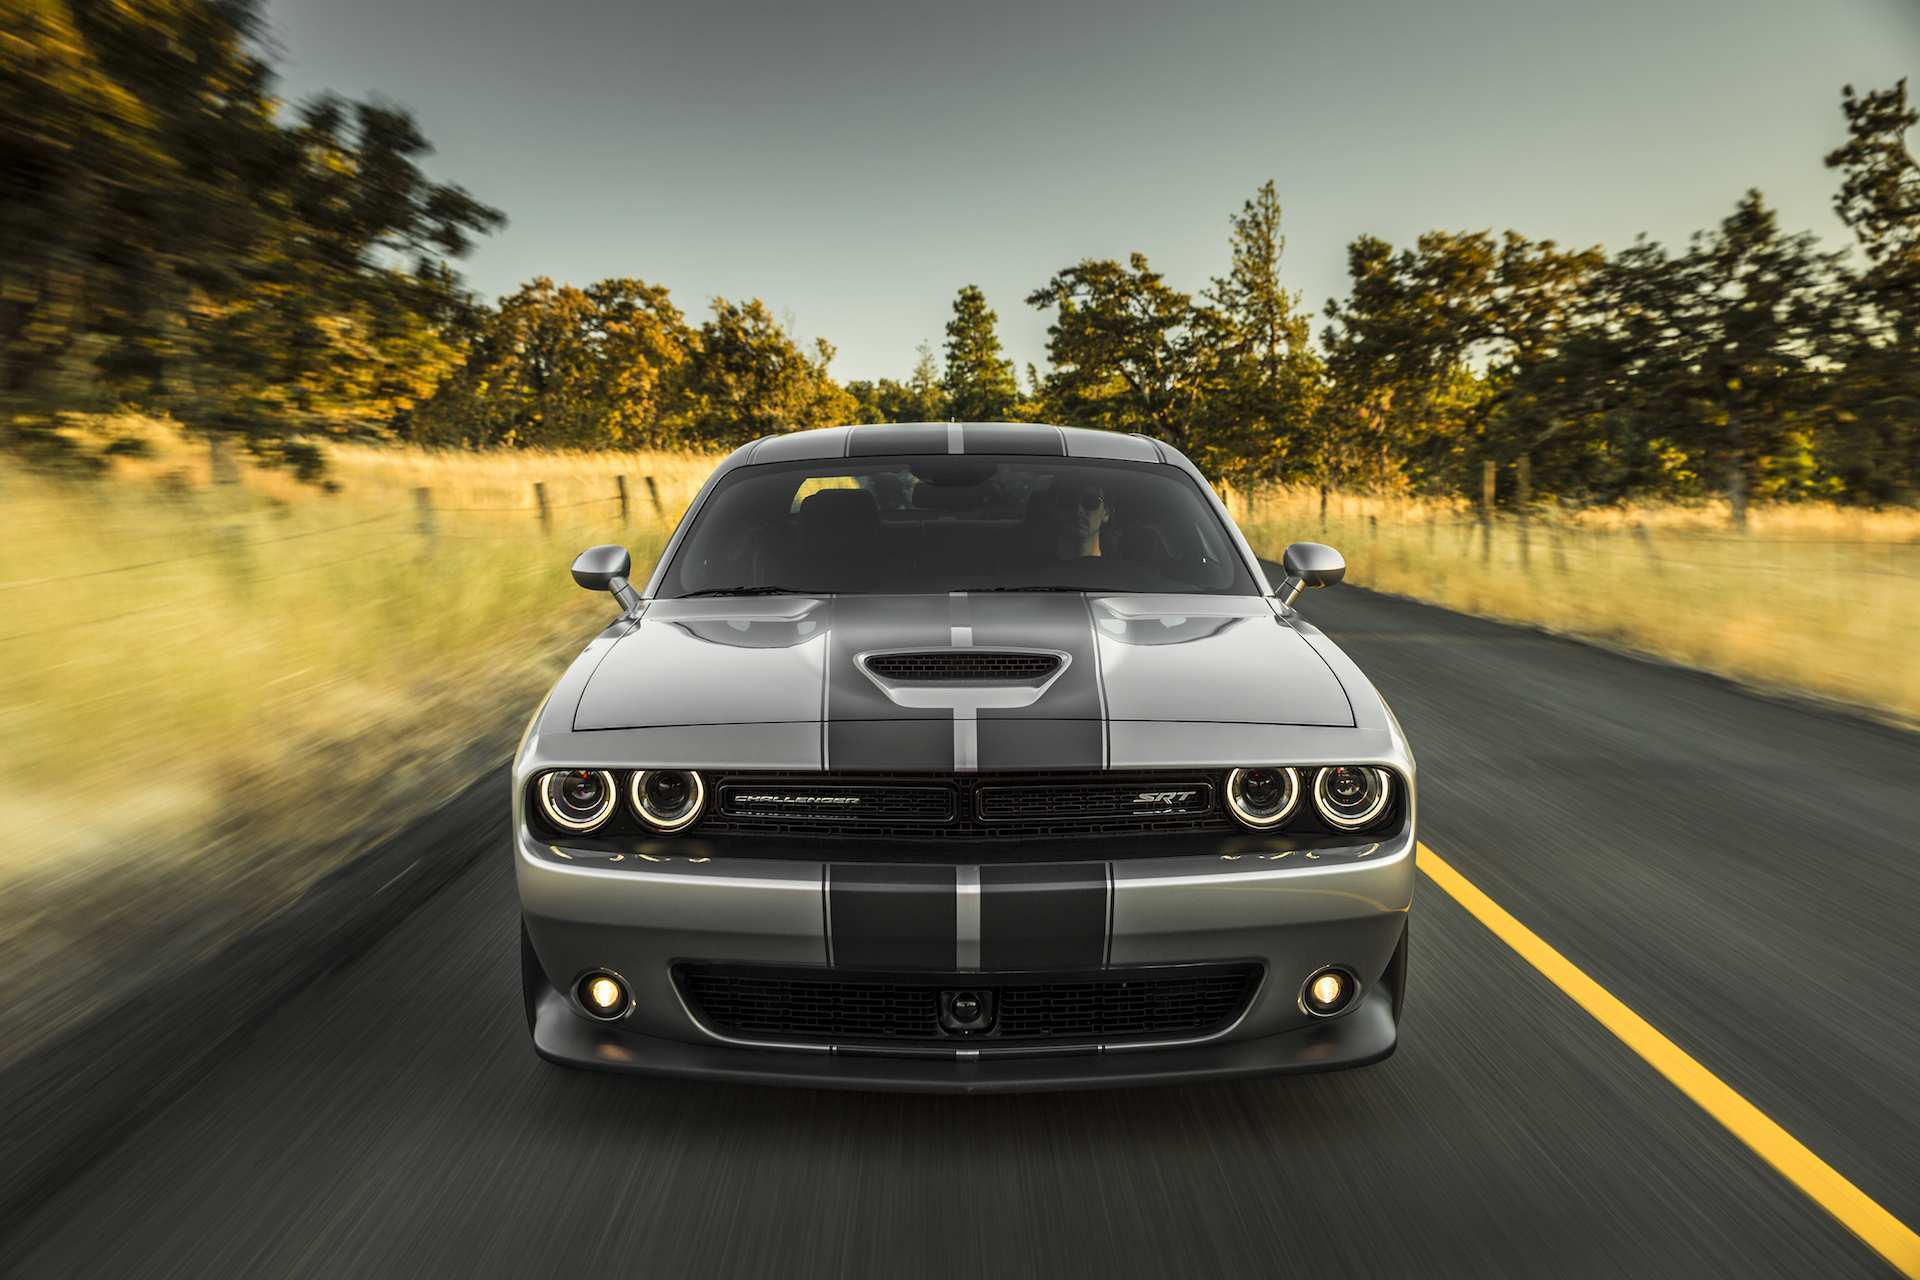 99 New 2020 Challenger Srt8 Hellcat Ratings